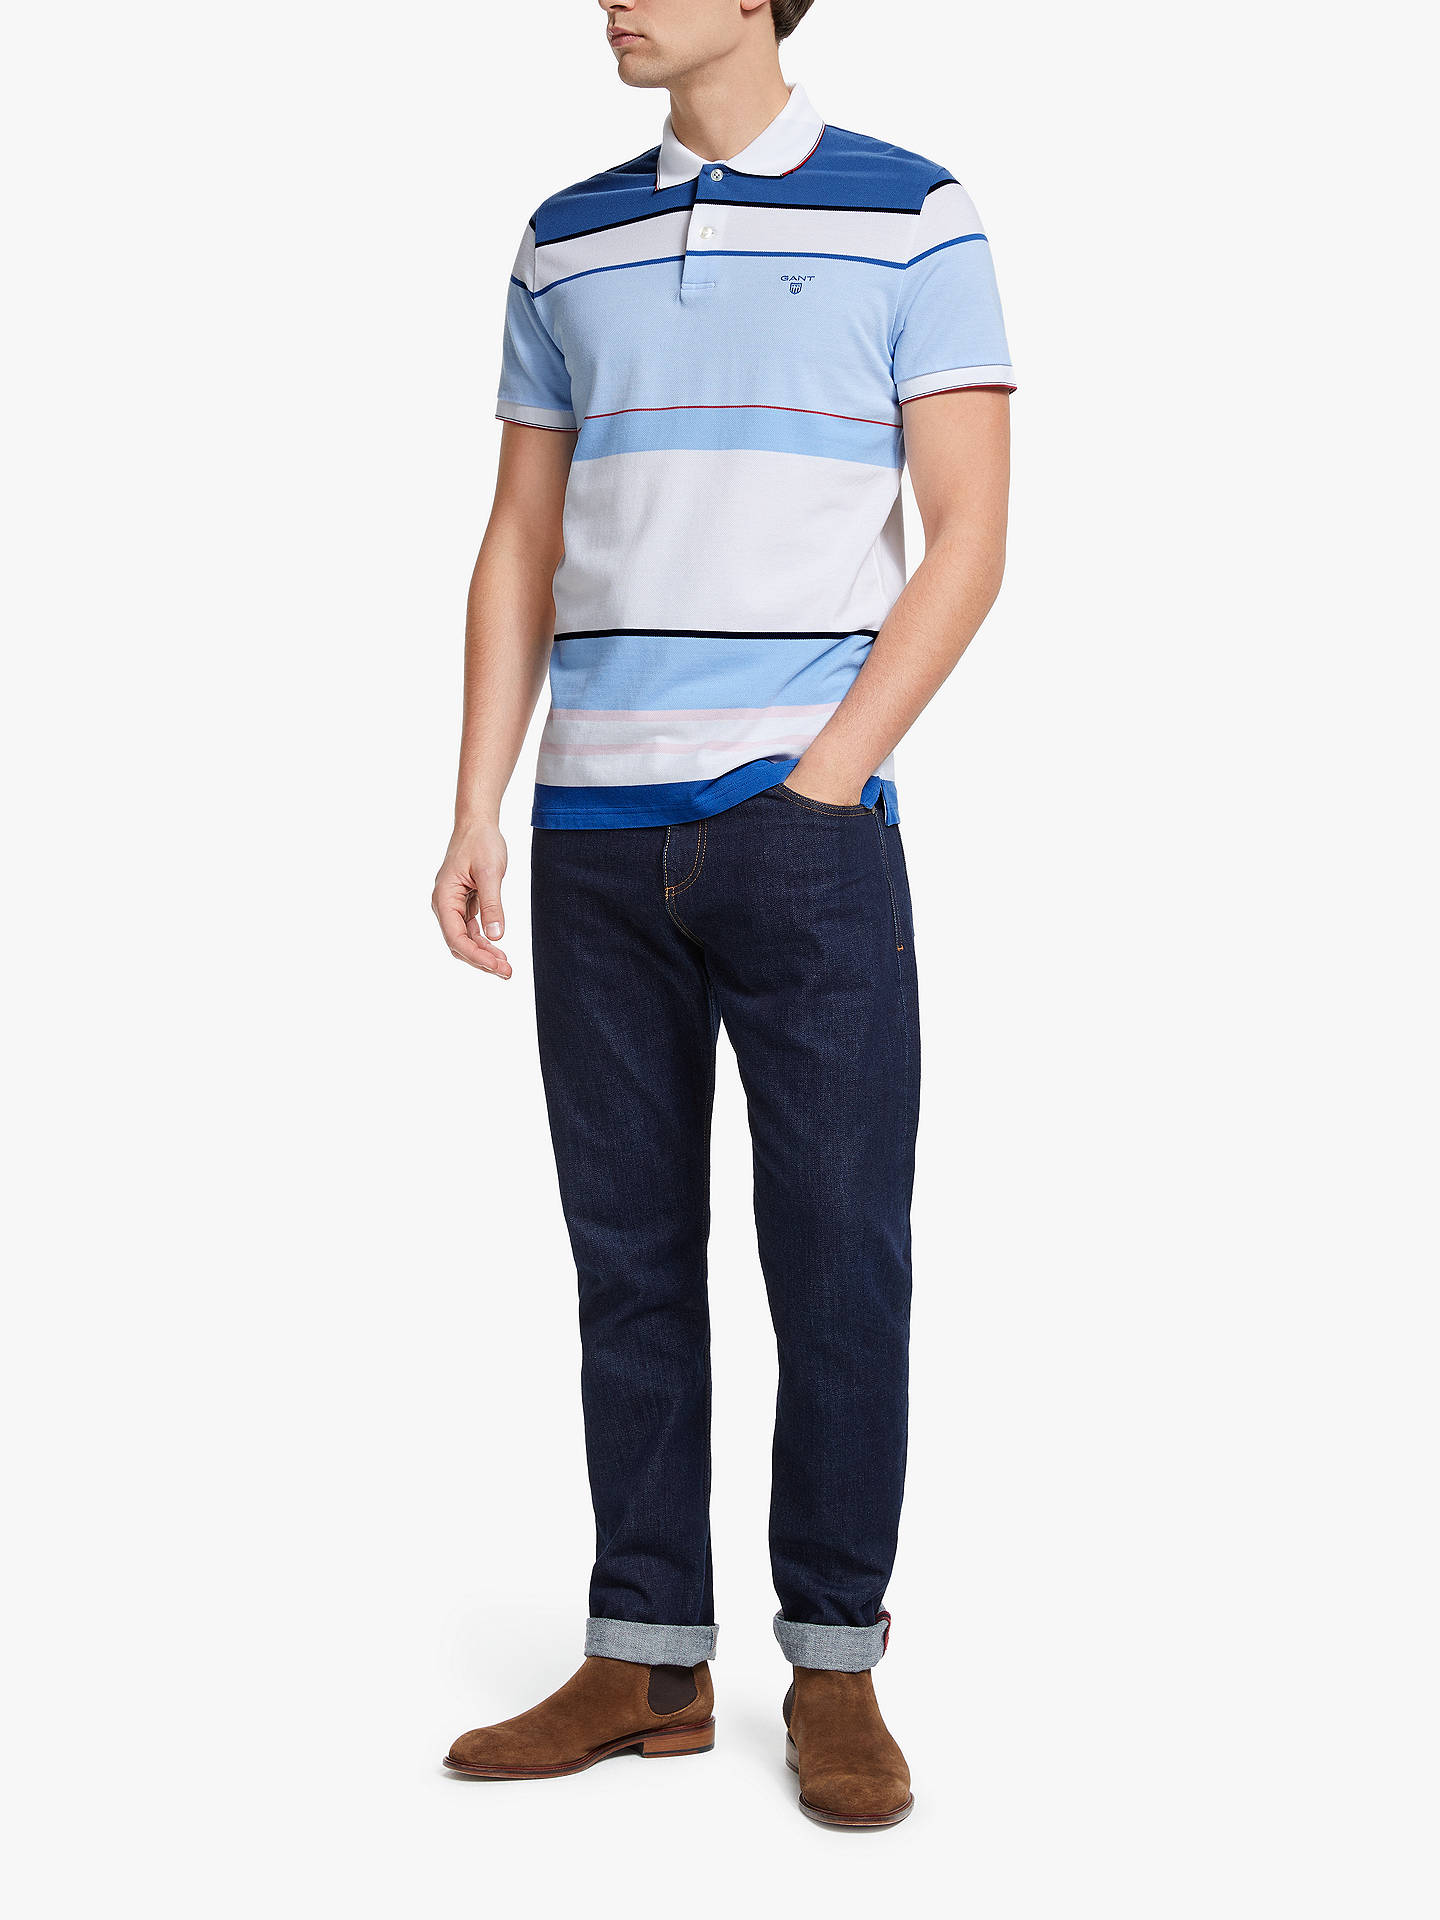 87dfca1eba3 ... Buy GANT Contrast Colour Block Polo Shirt, Blue, L Online at  johnlewis.com ...